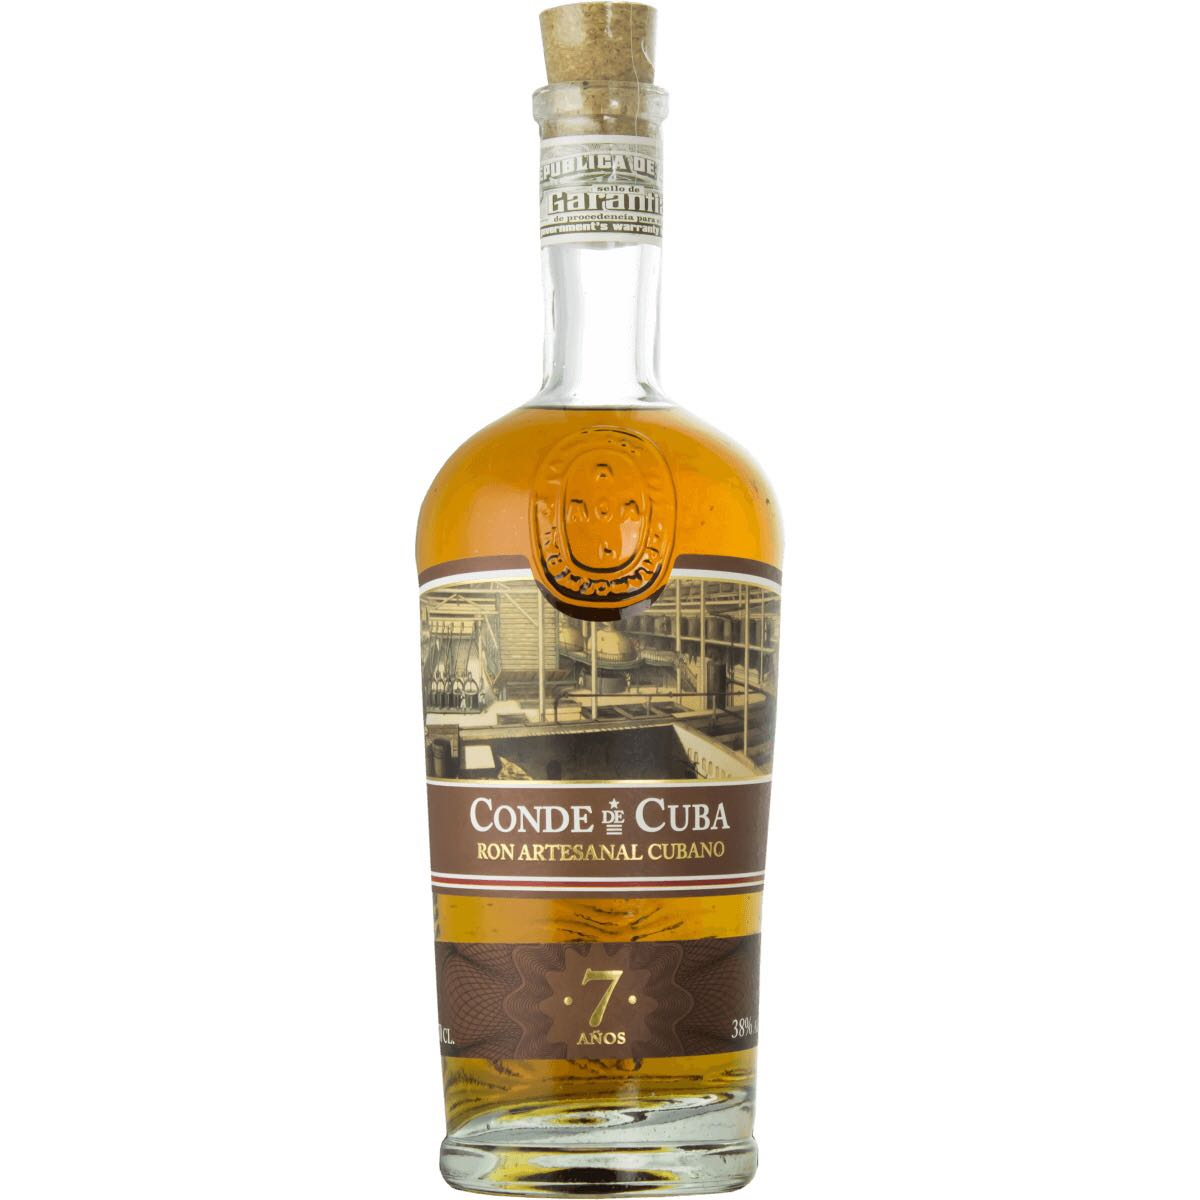 Bottle image of 7 Años